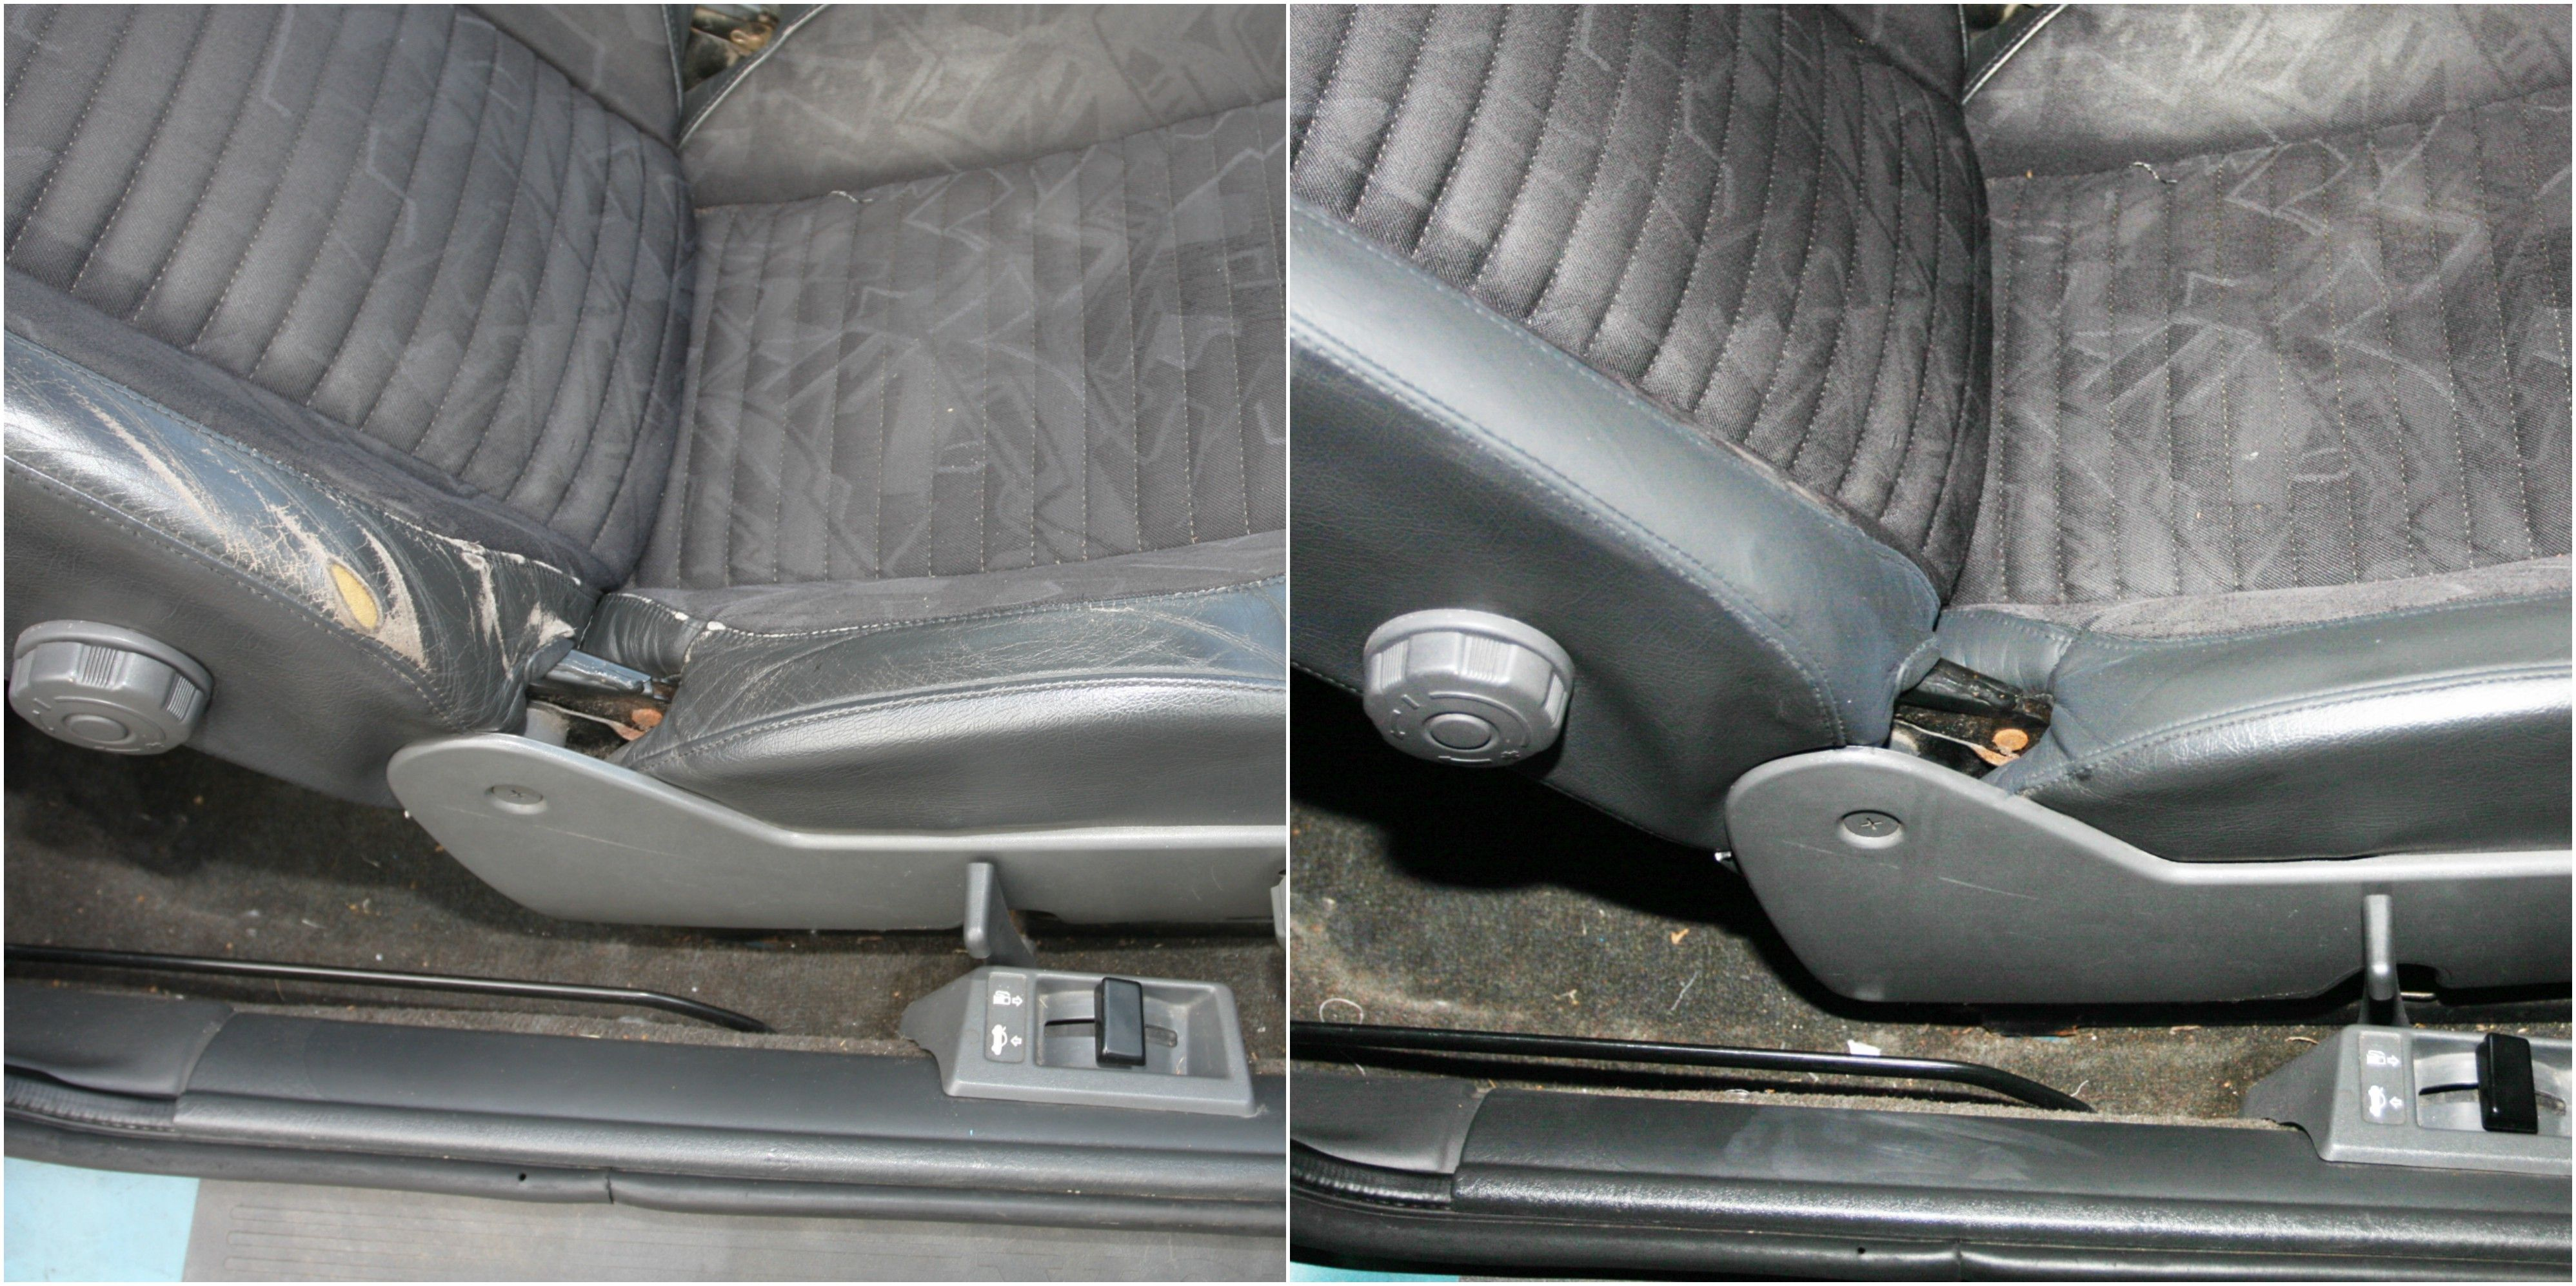 How To Repair Scuffs Scratches And Tears In A Leather Car Bolster Or Seat